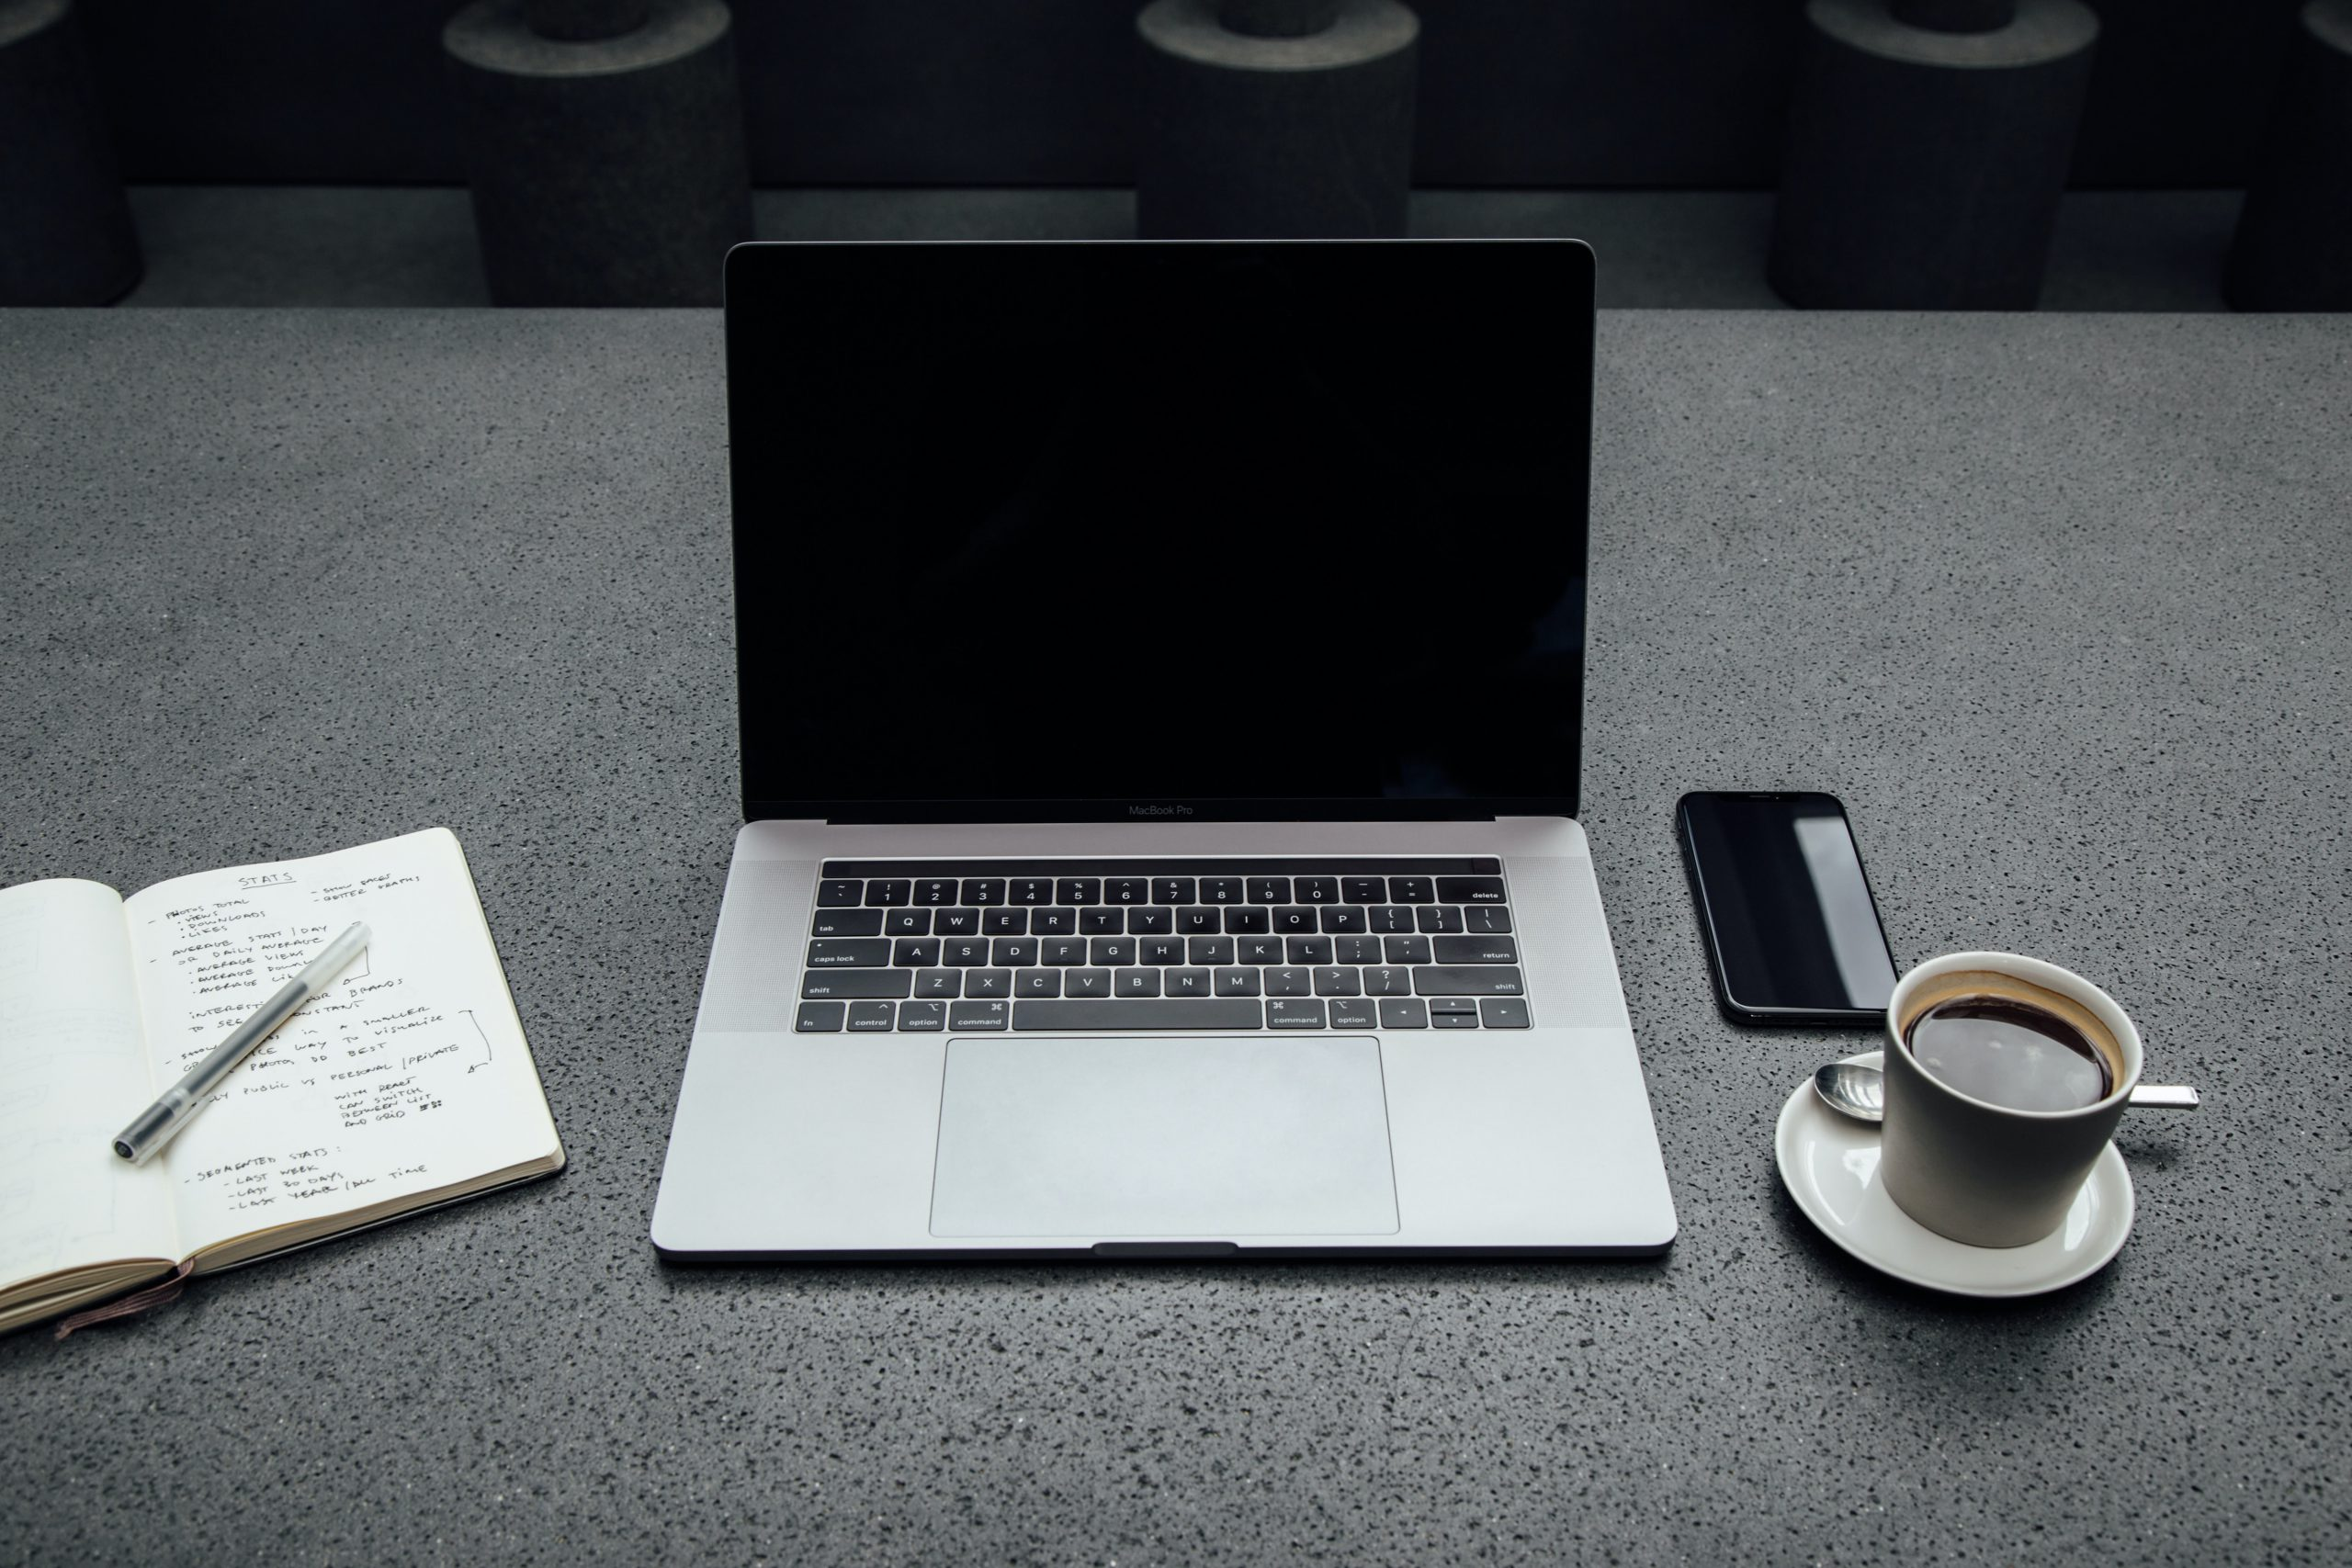 A picture of a workspace that has a laptop, smart phone, notebook, and cup of coffee.